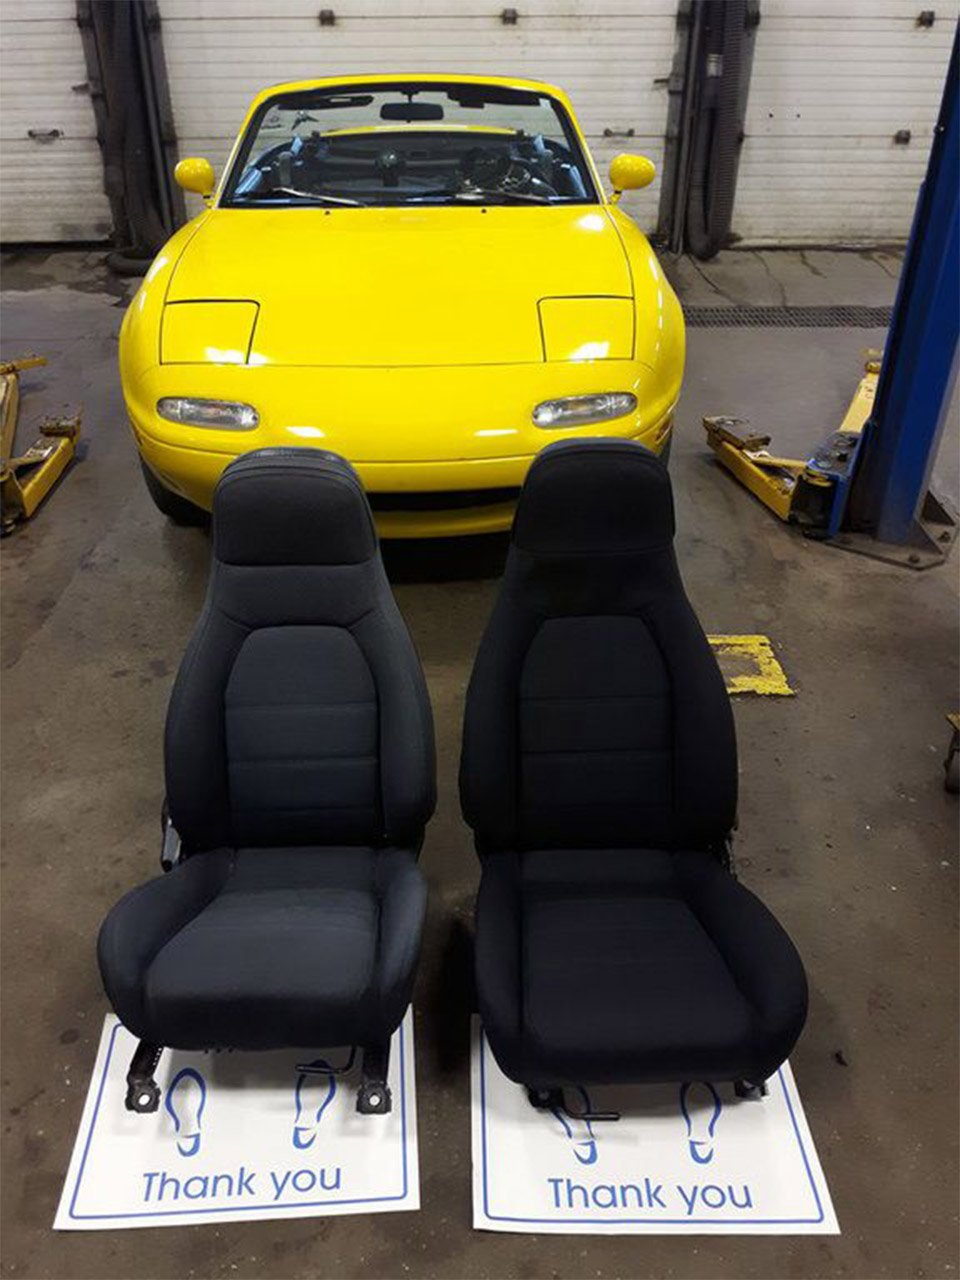 Mazda Dealer Surprises Miata Customer with New Seats